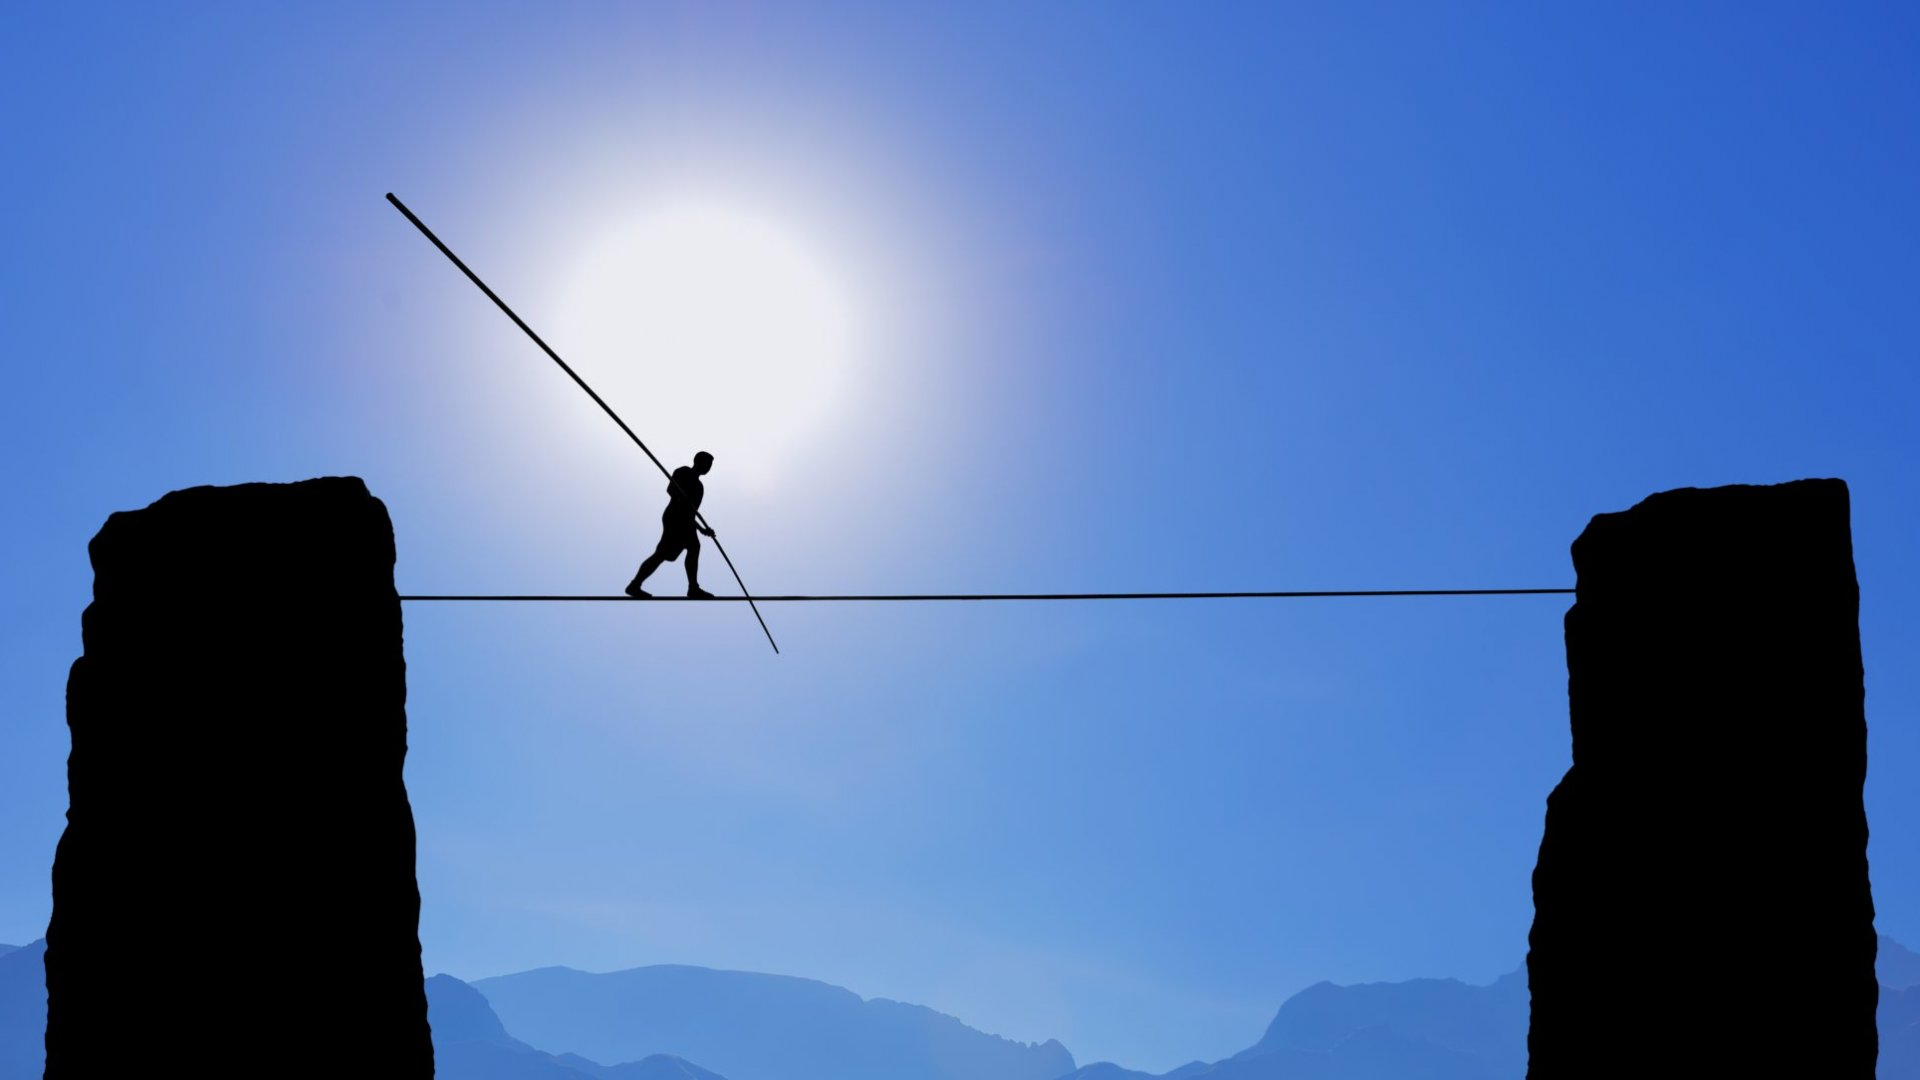 Walking the Tightrope Between Creativity and Productivity